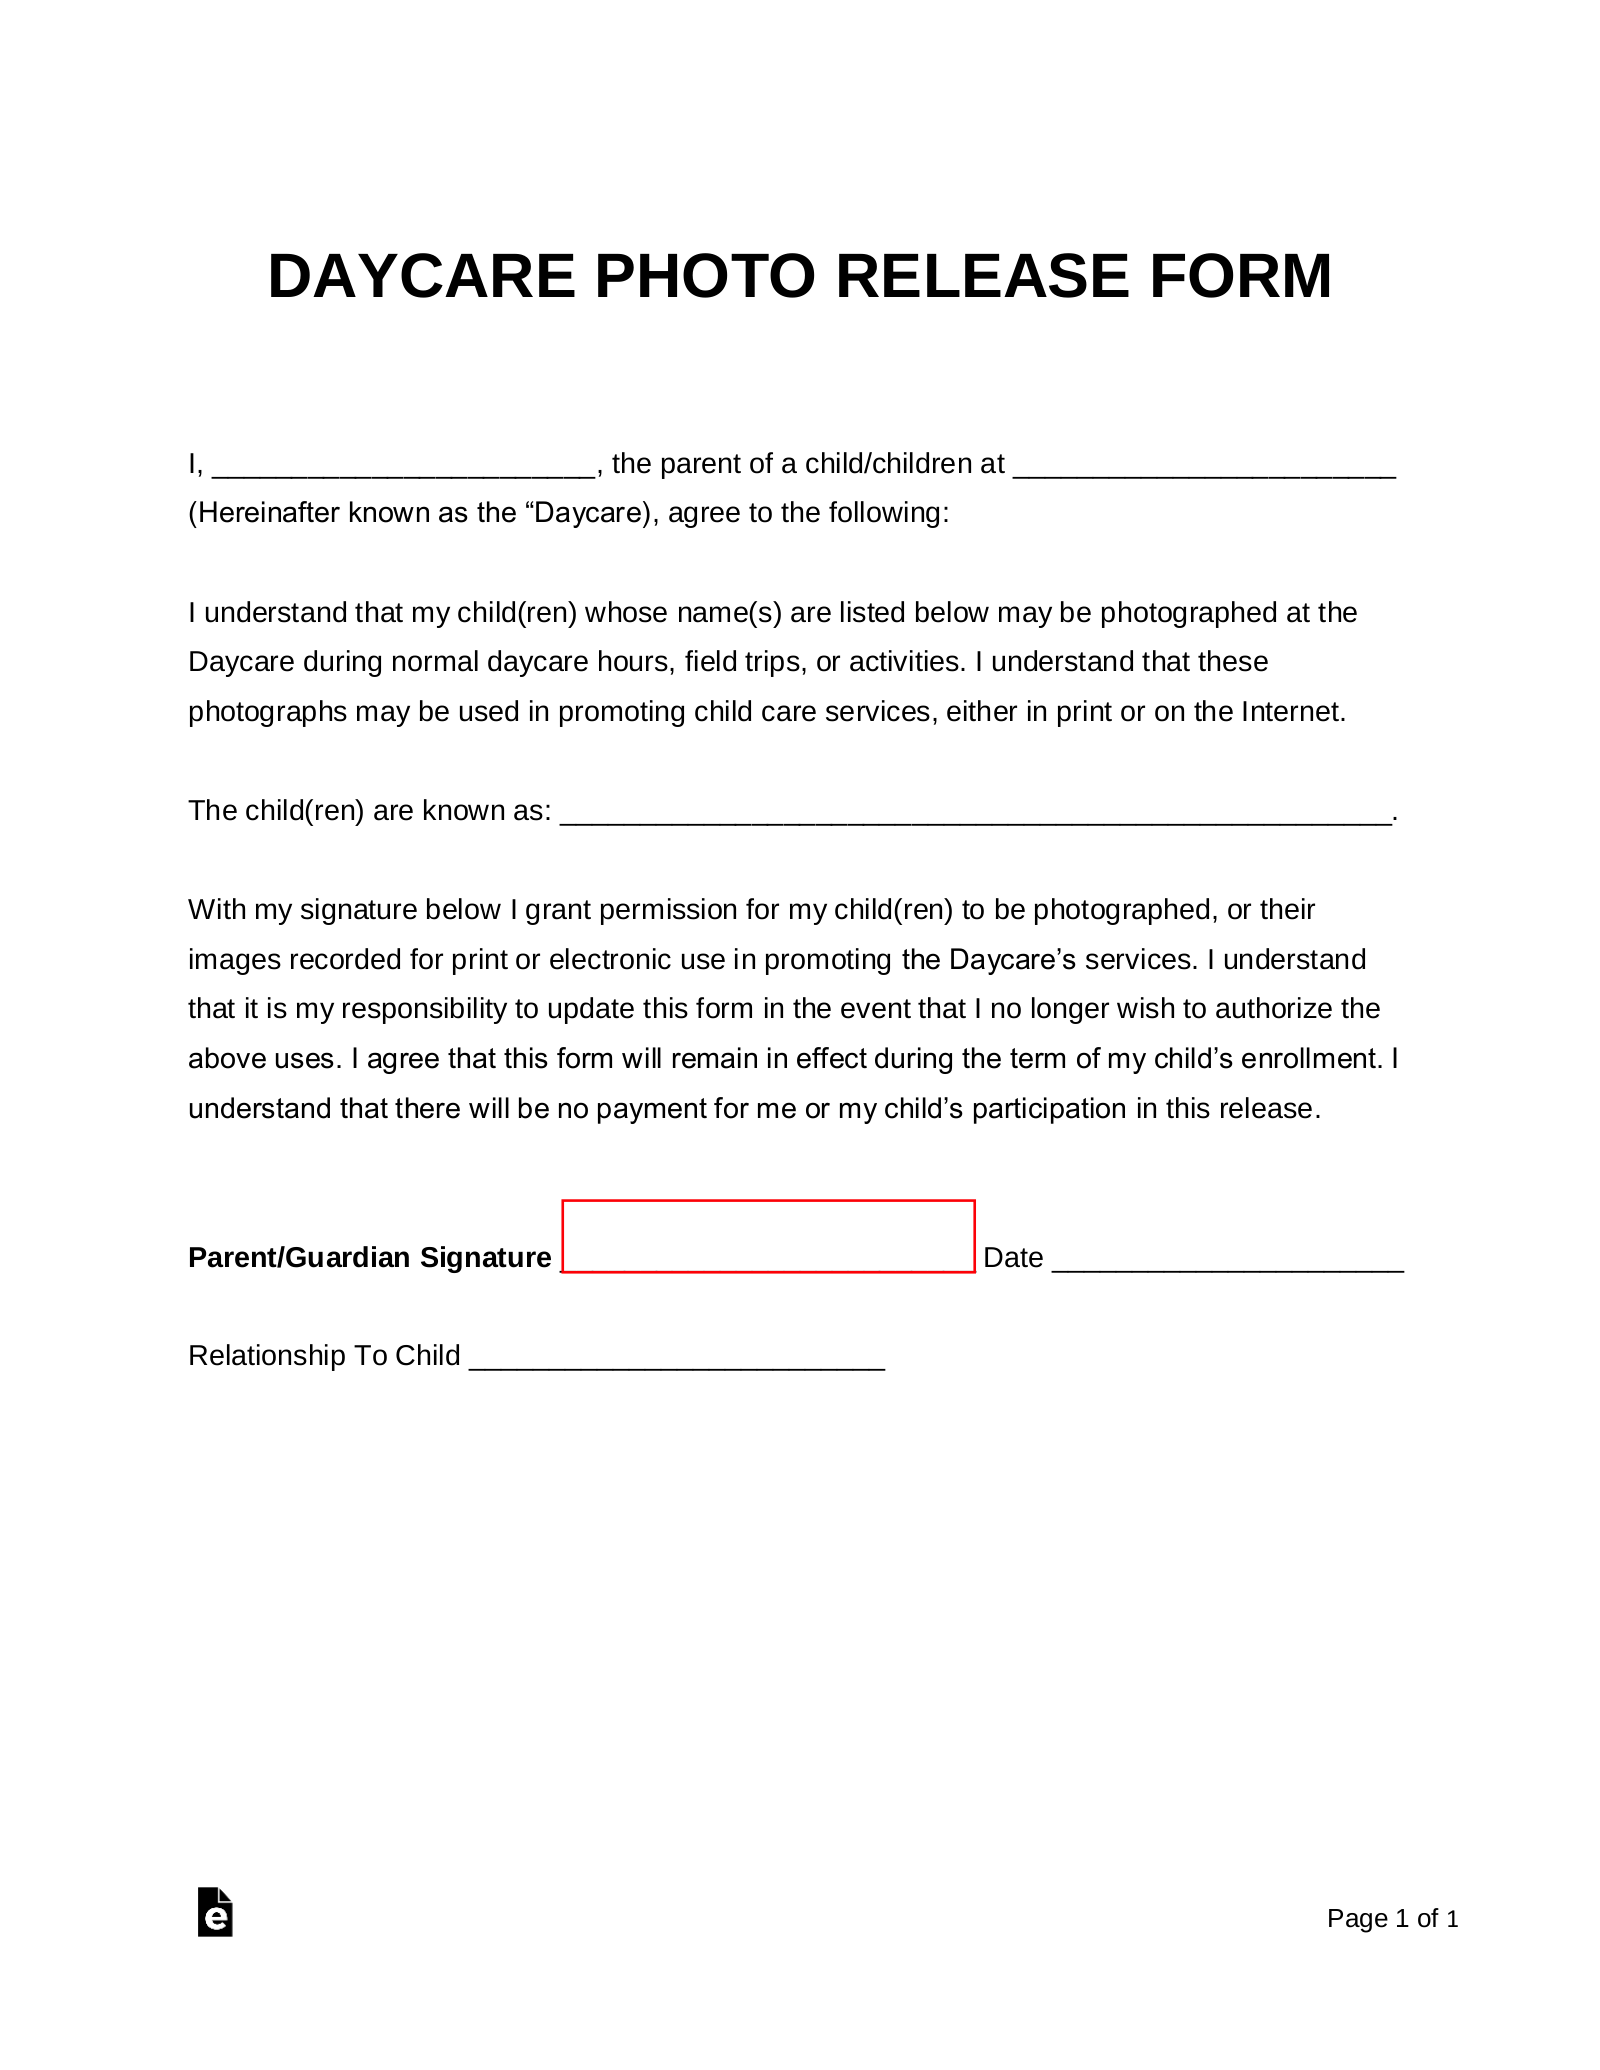 Free Daycare Photo Release Form